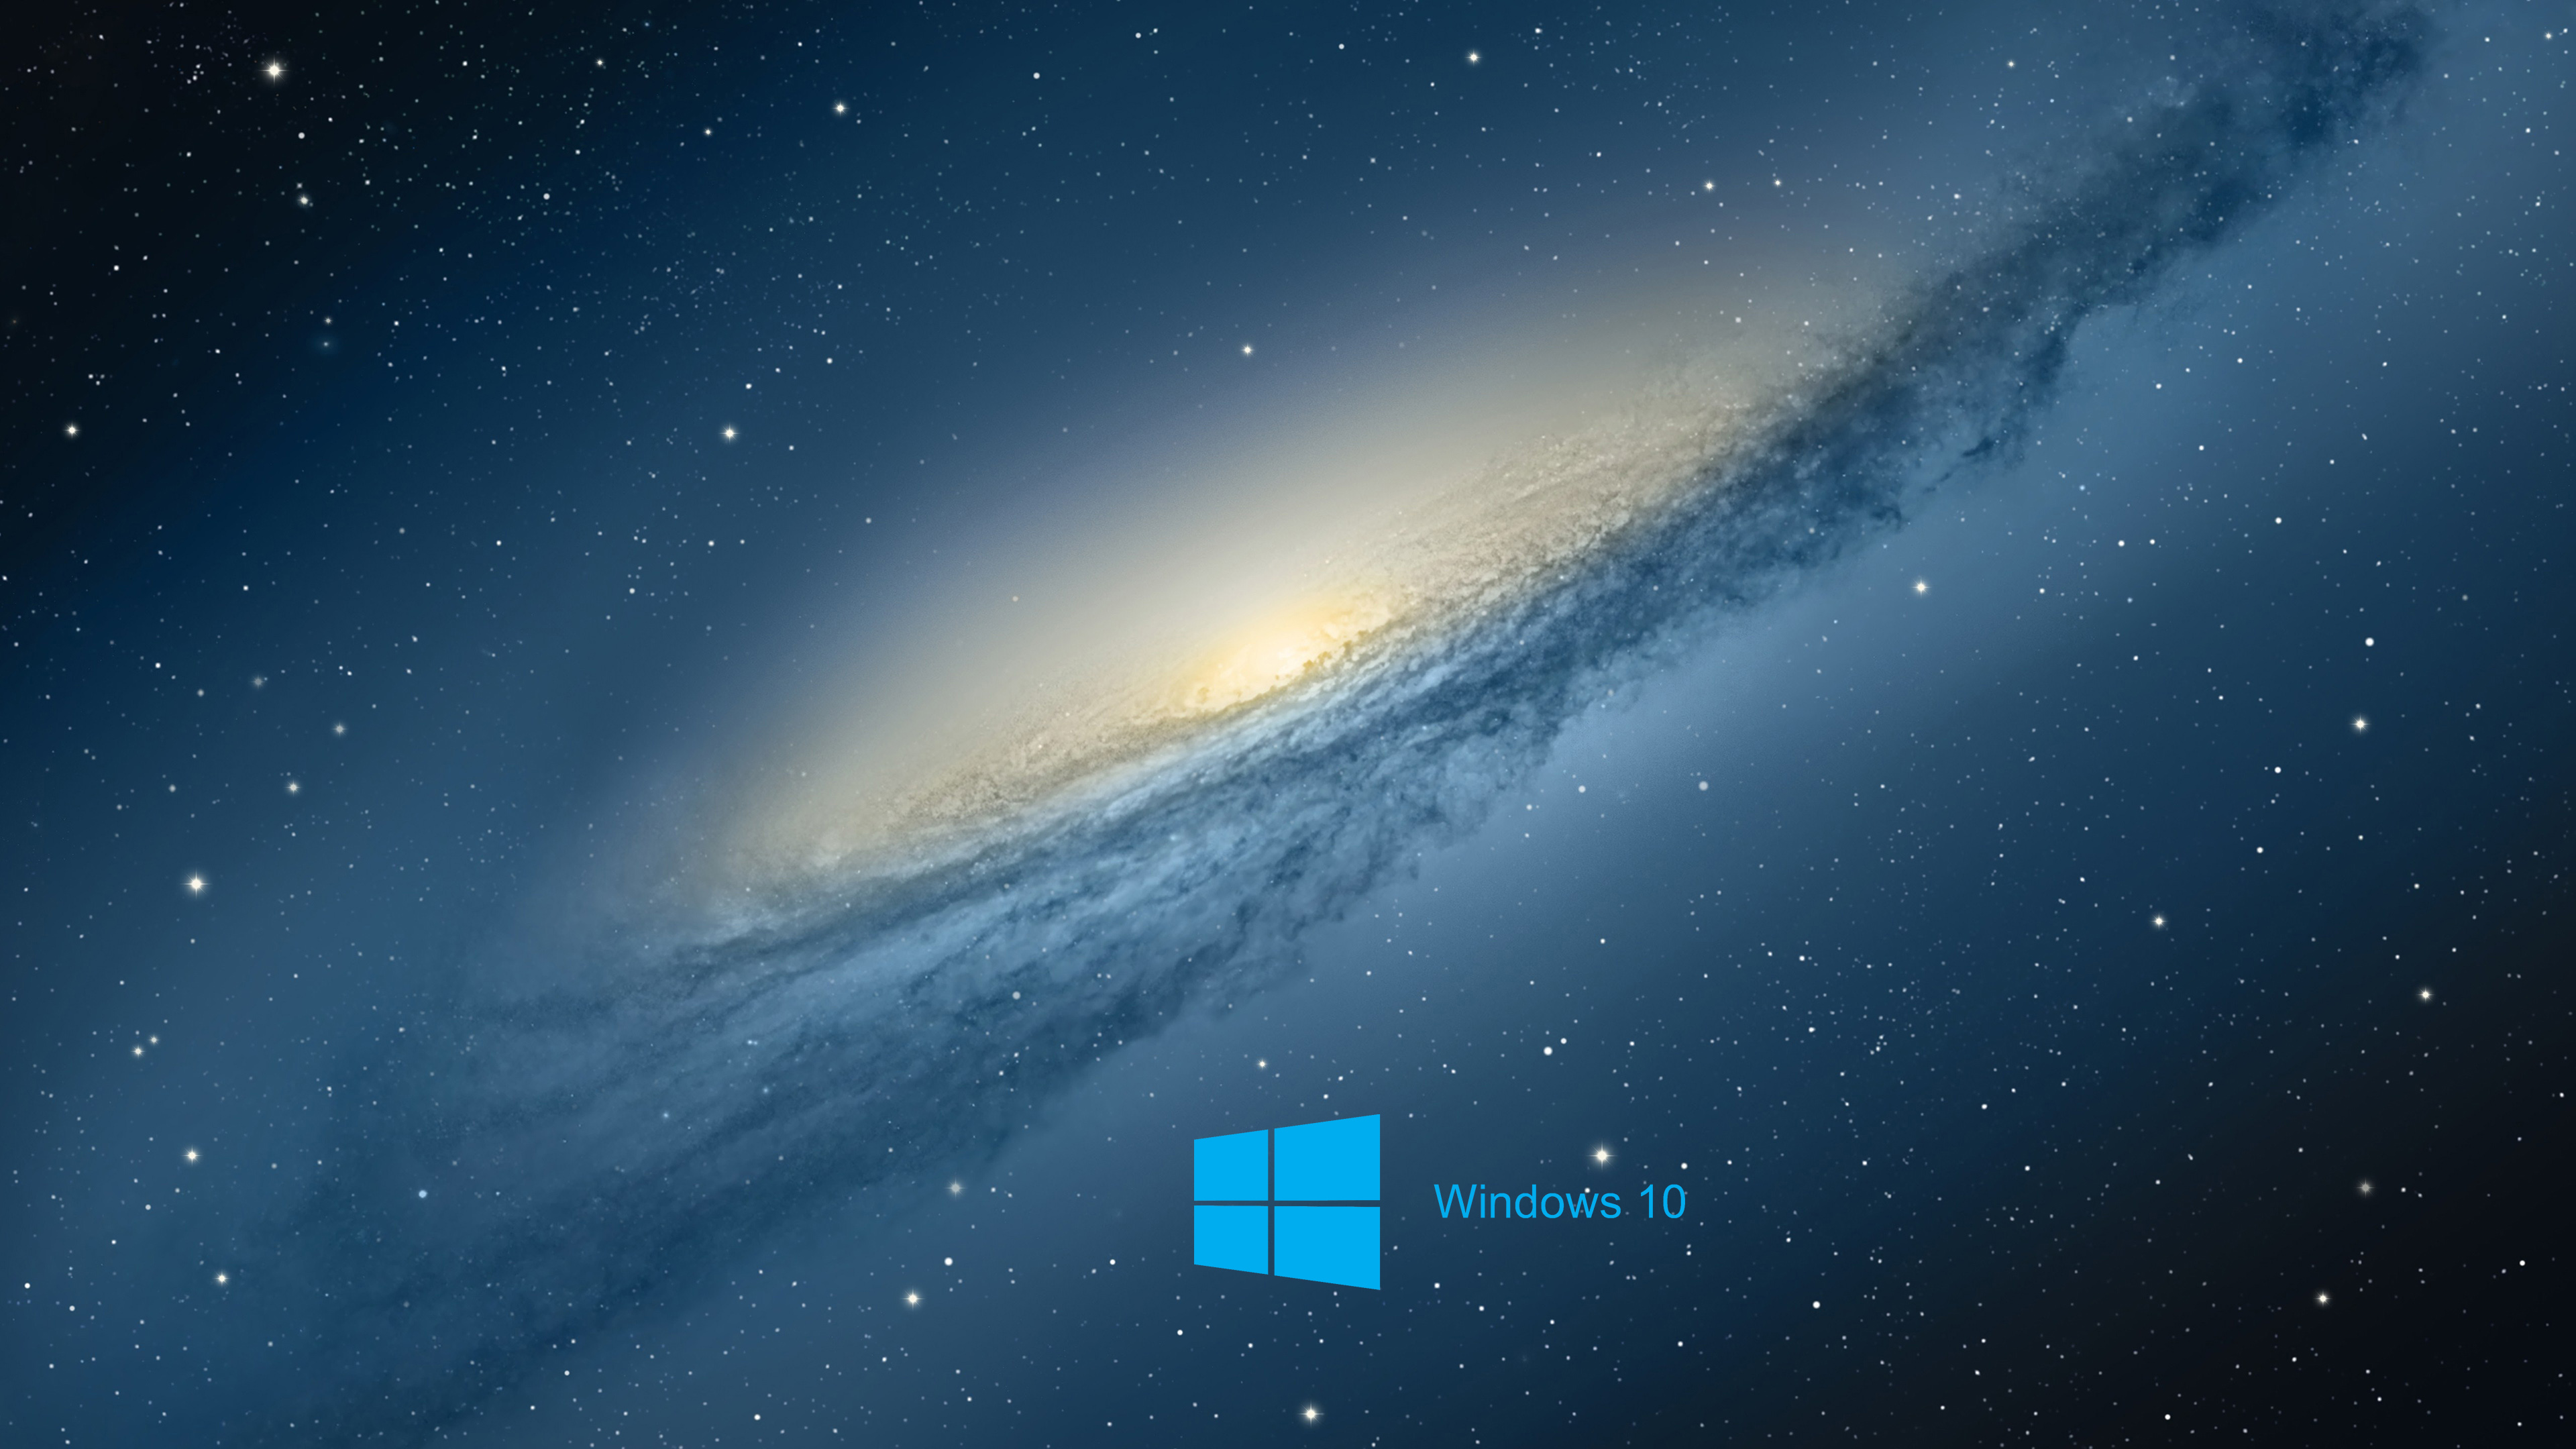 Download 83+ Wallpaper Hd For Windows 10 Gratis